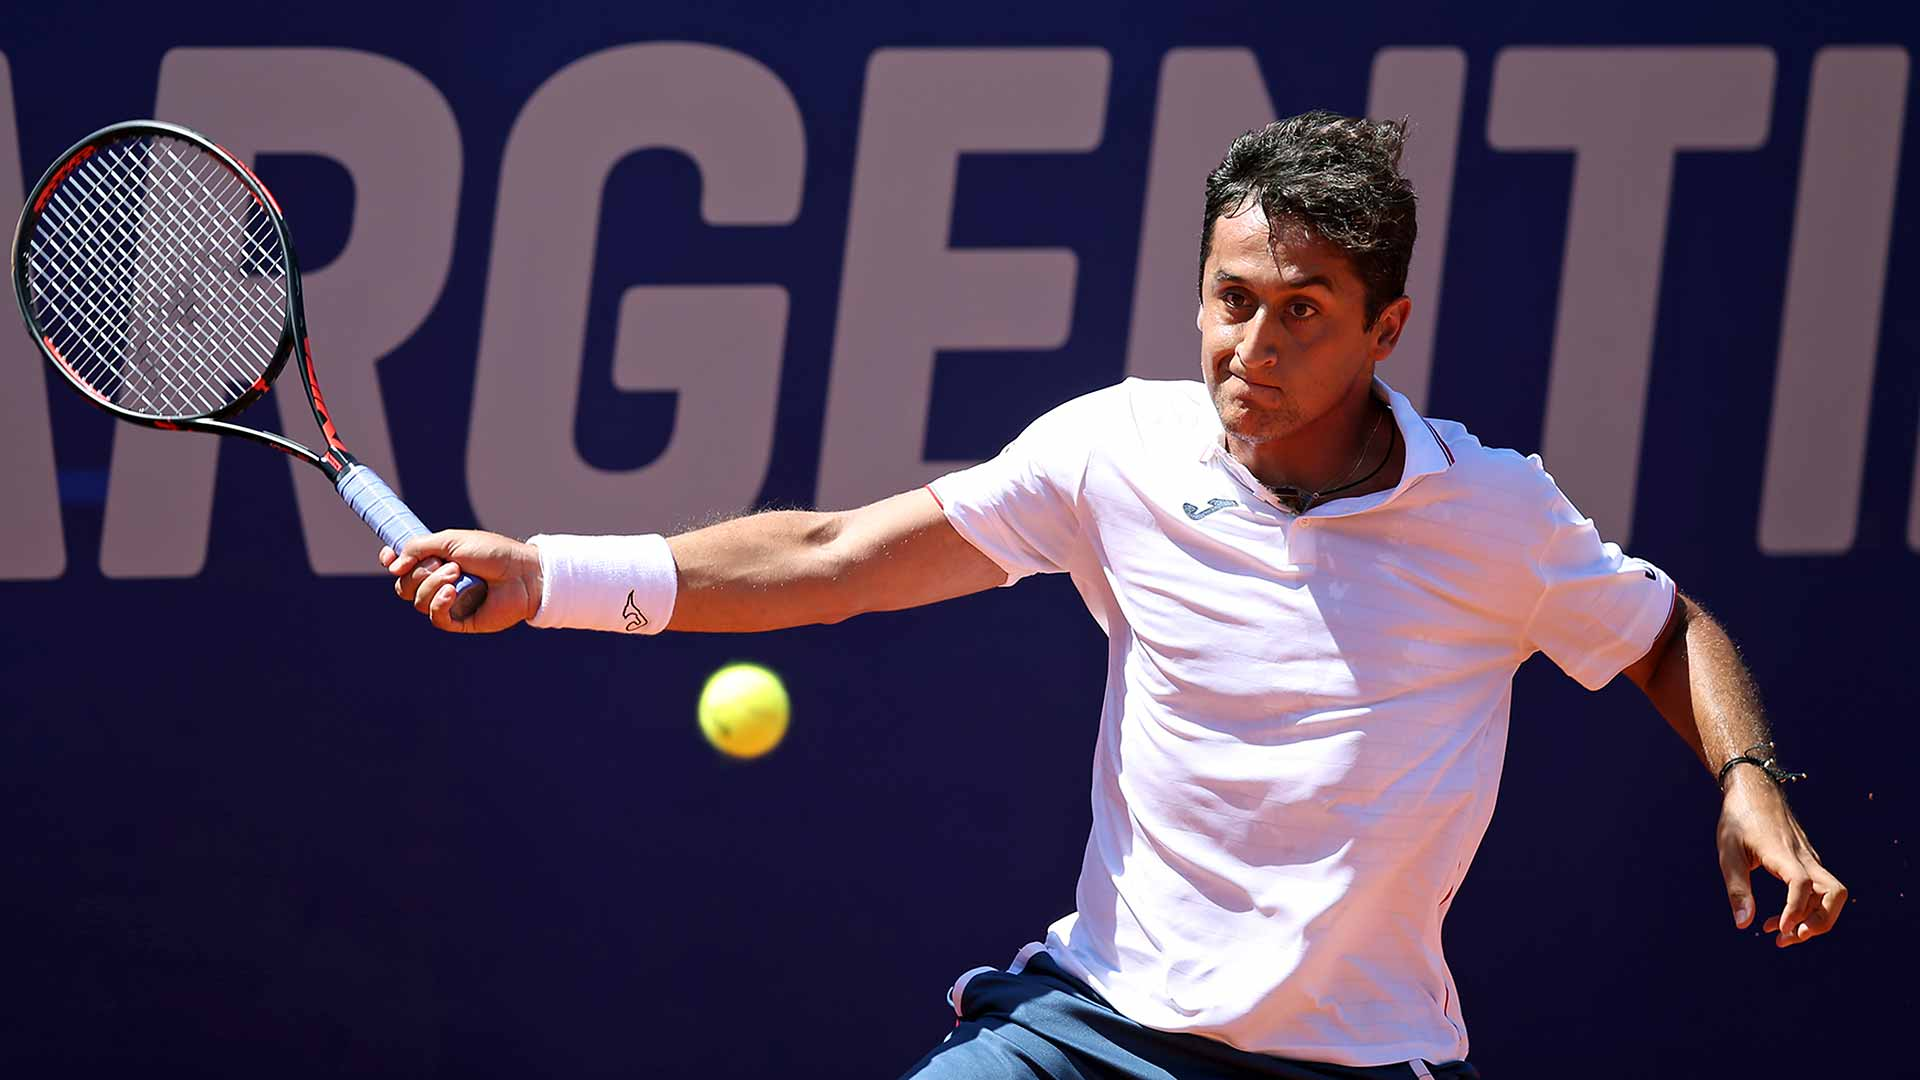 Almagro fights into the quarter-finals